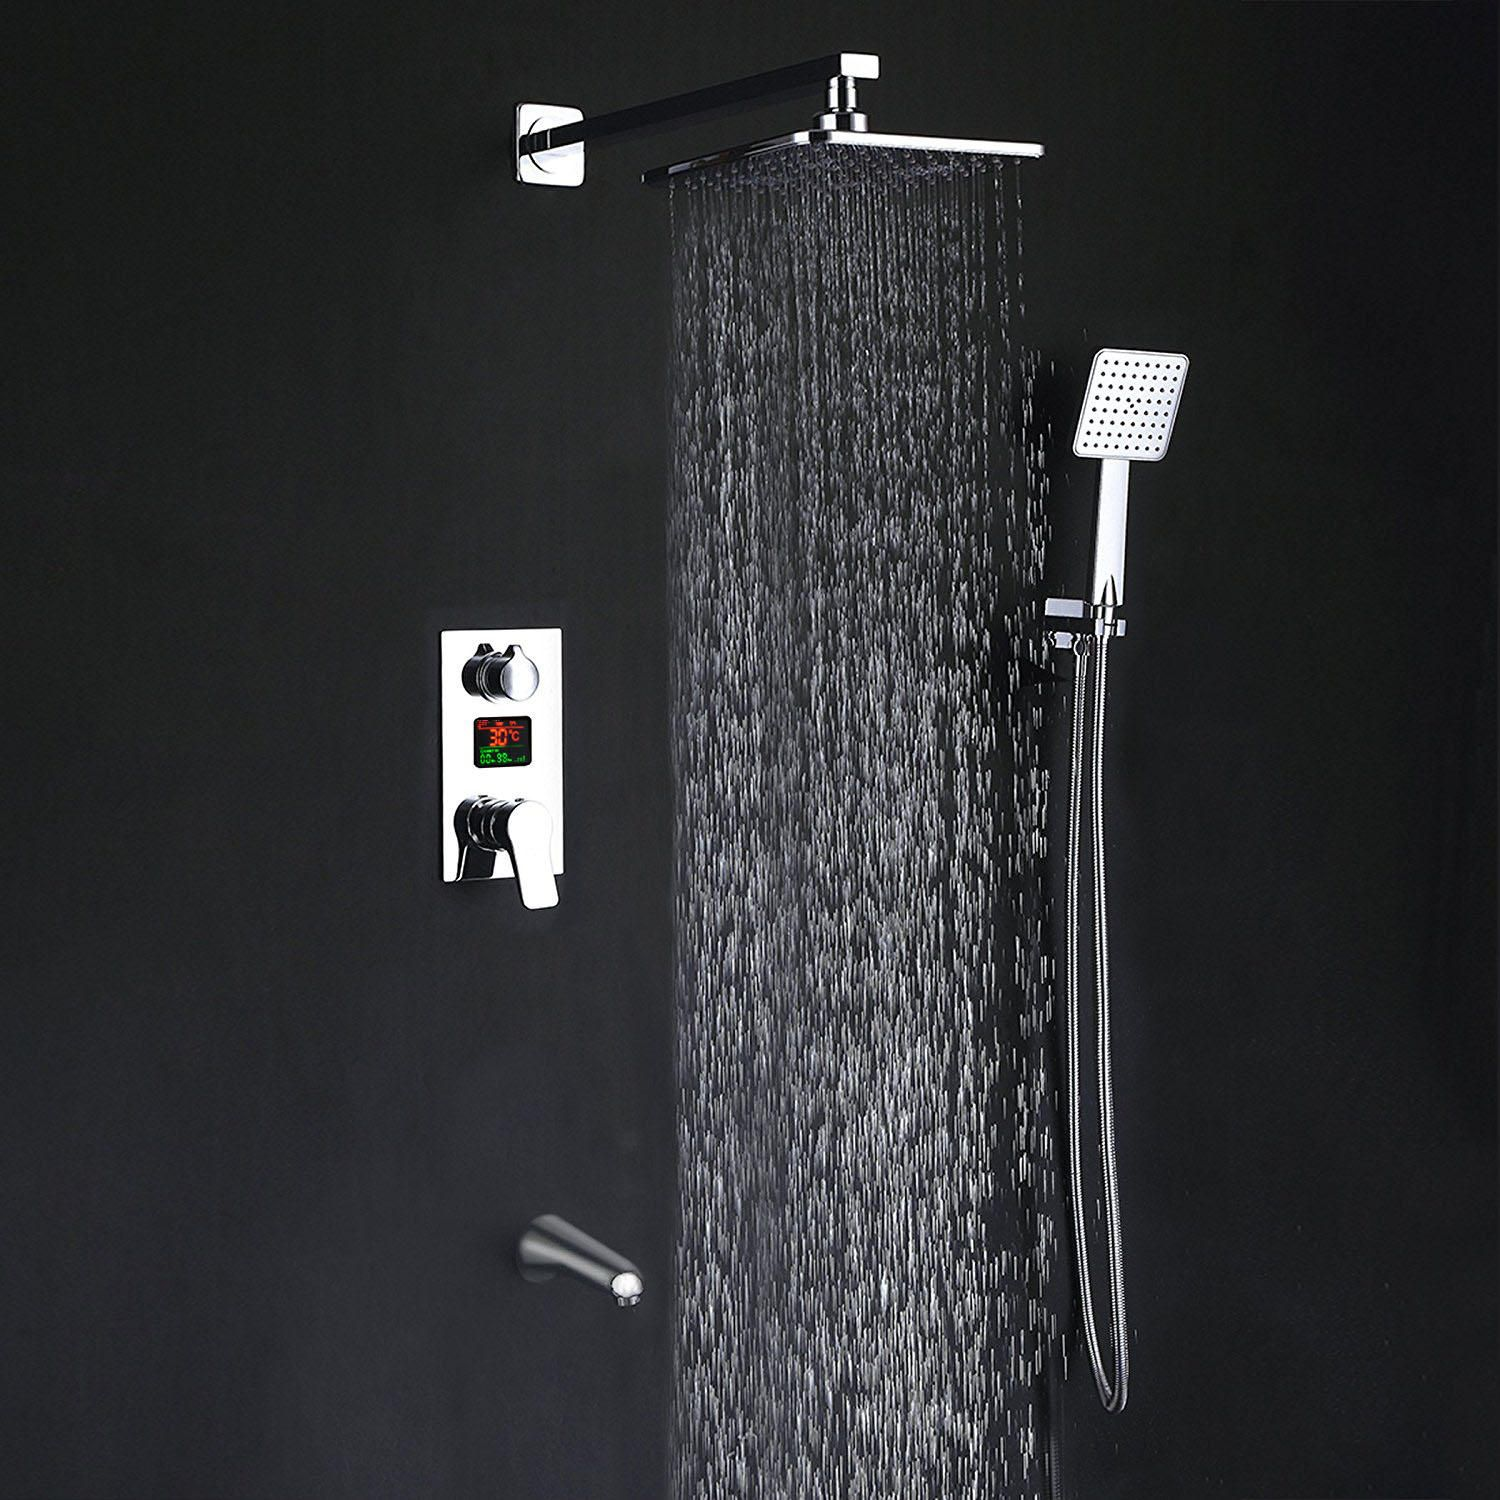 KCASA KC S100 LED Digital Display Wall Mount Bathroom Rain Mixer Shower Set Three Ways Shower System with Luxury Rainfall Shower Head Handheld Shower and Tub Spout Faucet